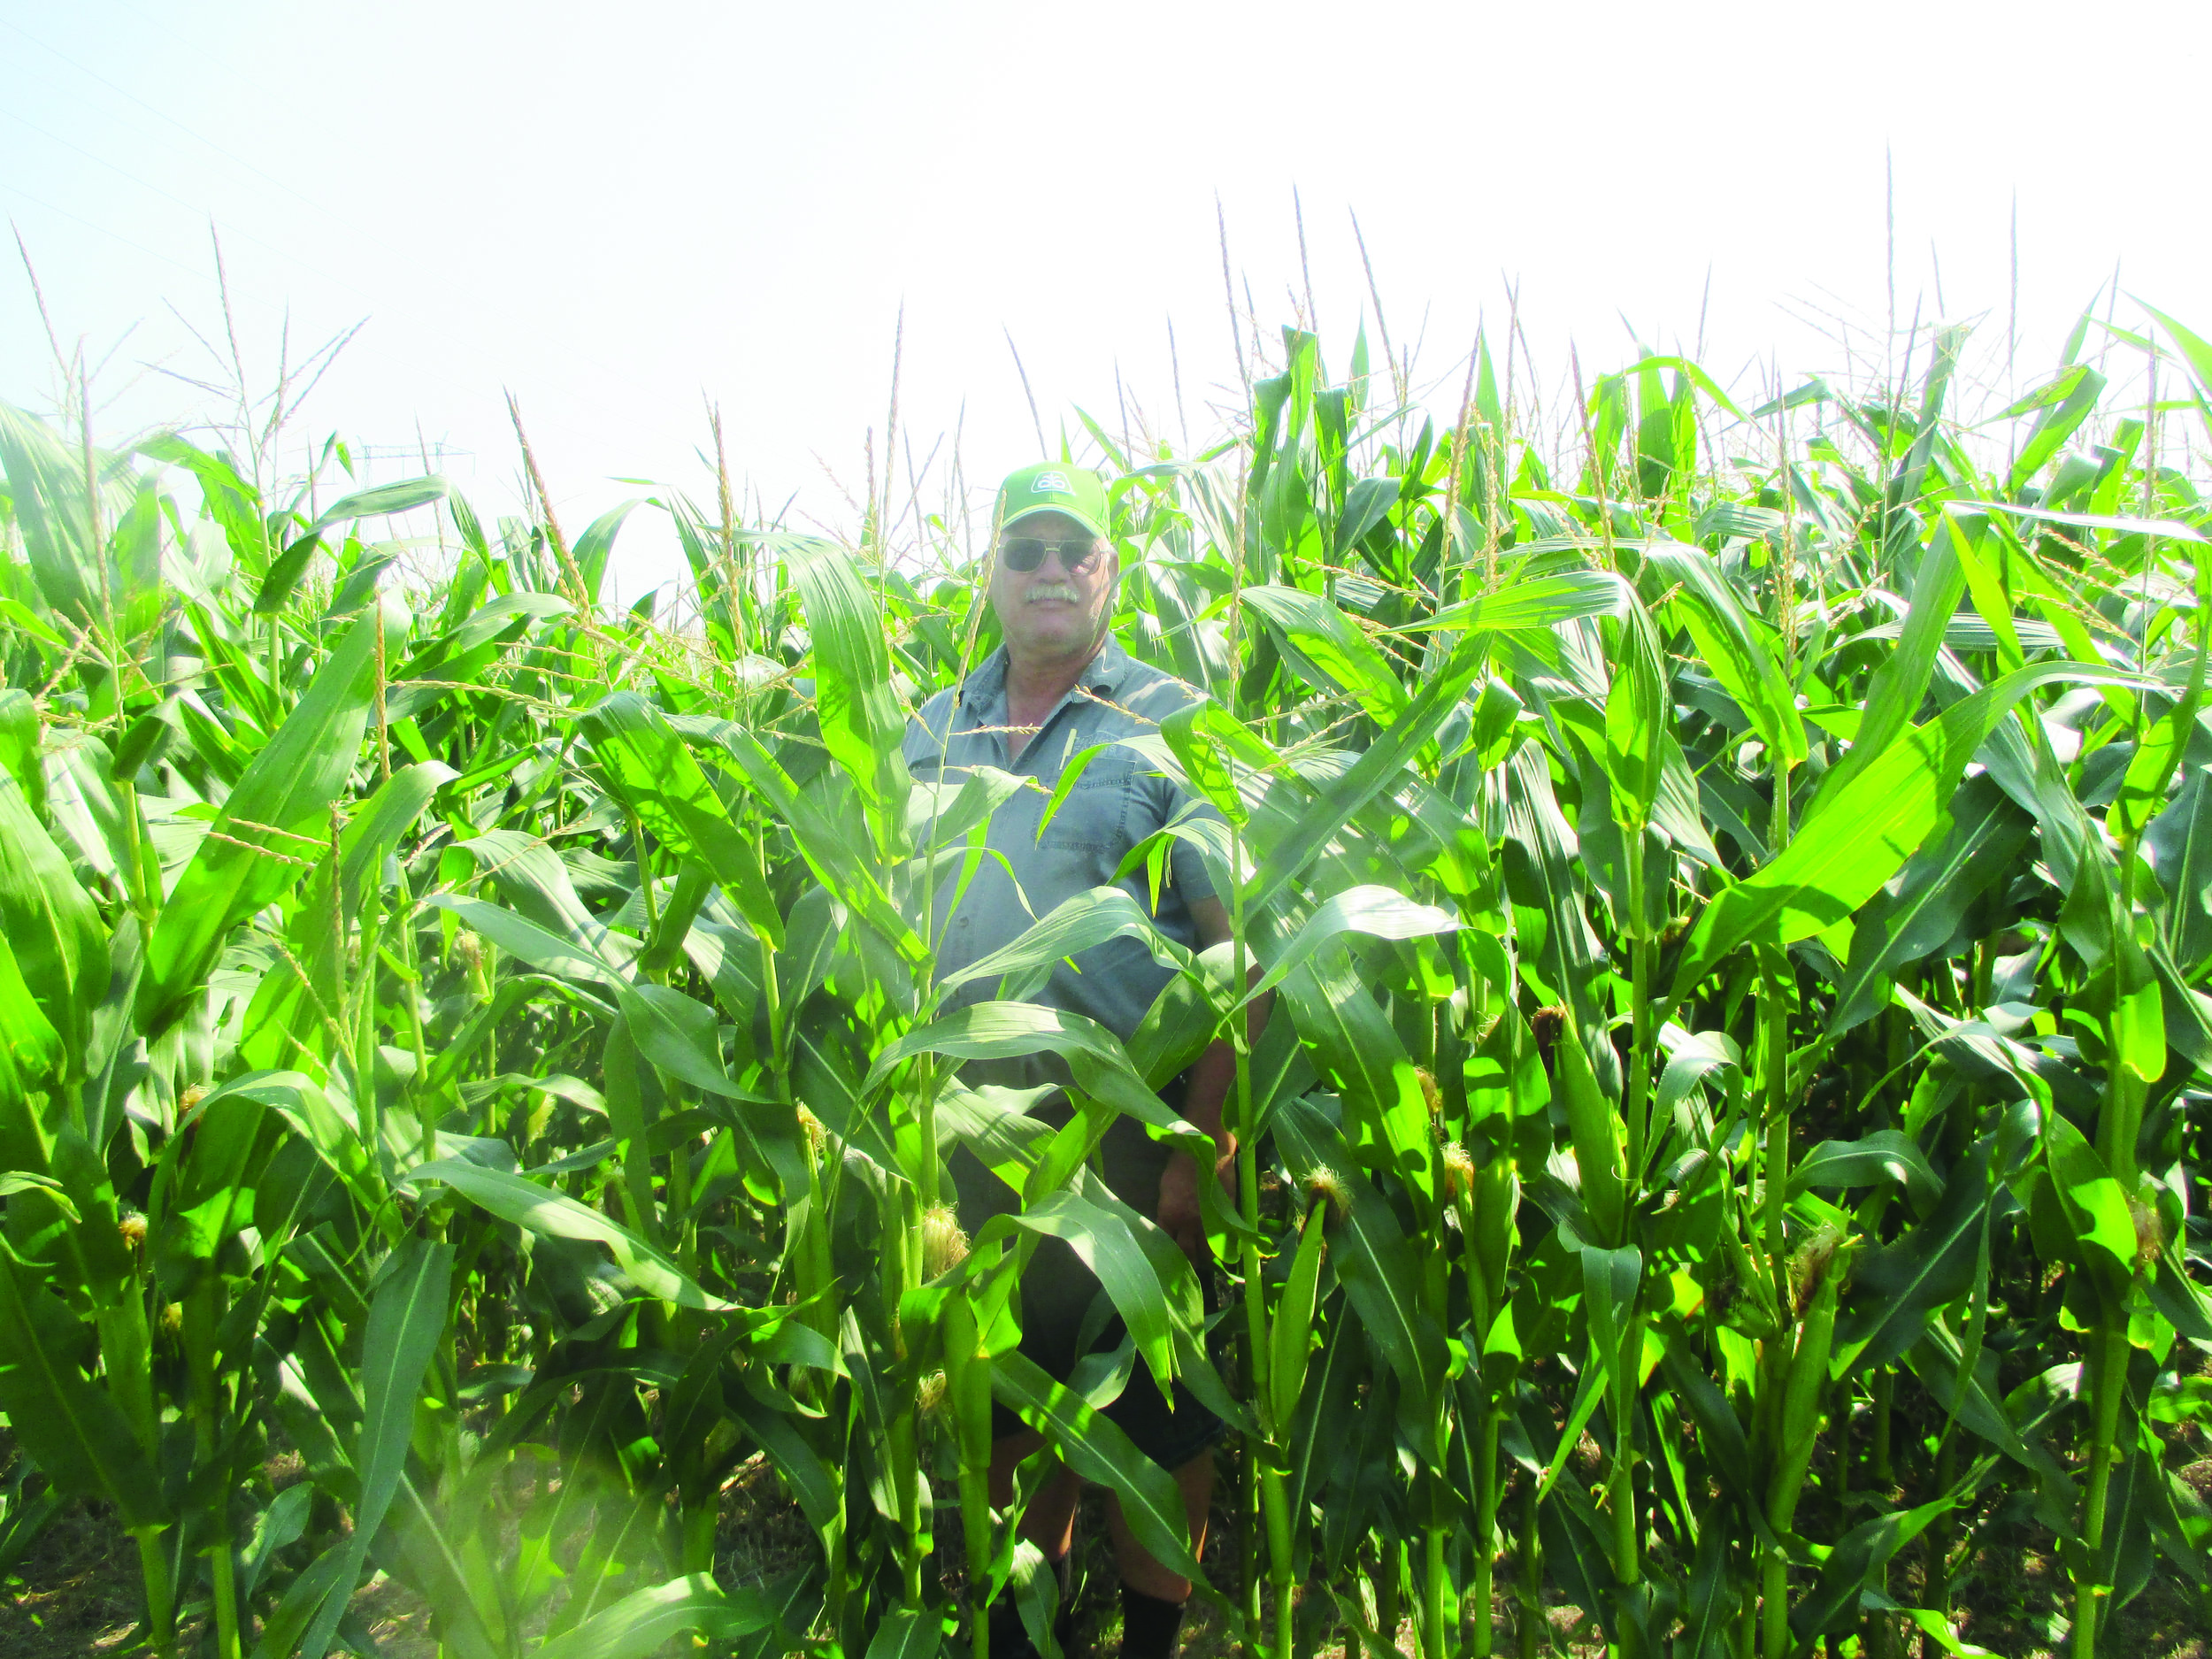 Kier Miller of Miller Farms in Sussex Corner, N.B., is pictured here in a cornfield. The New Brunswick Soil and Crop Improvement Association has named Miller Farms the province's 2017 farm of the year. (Submitted photos)